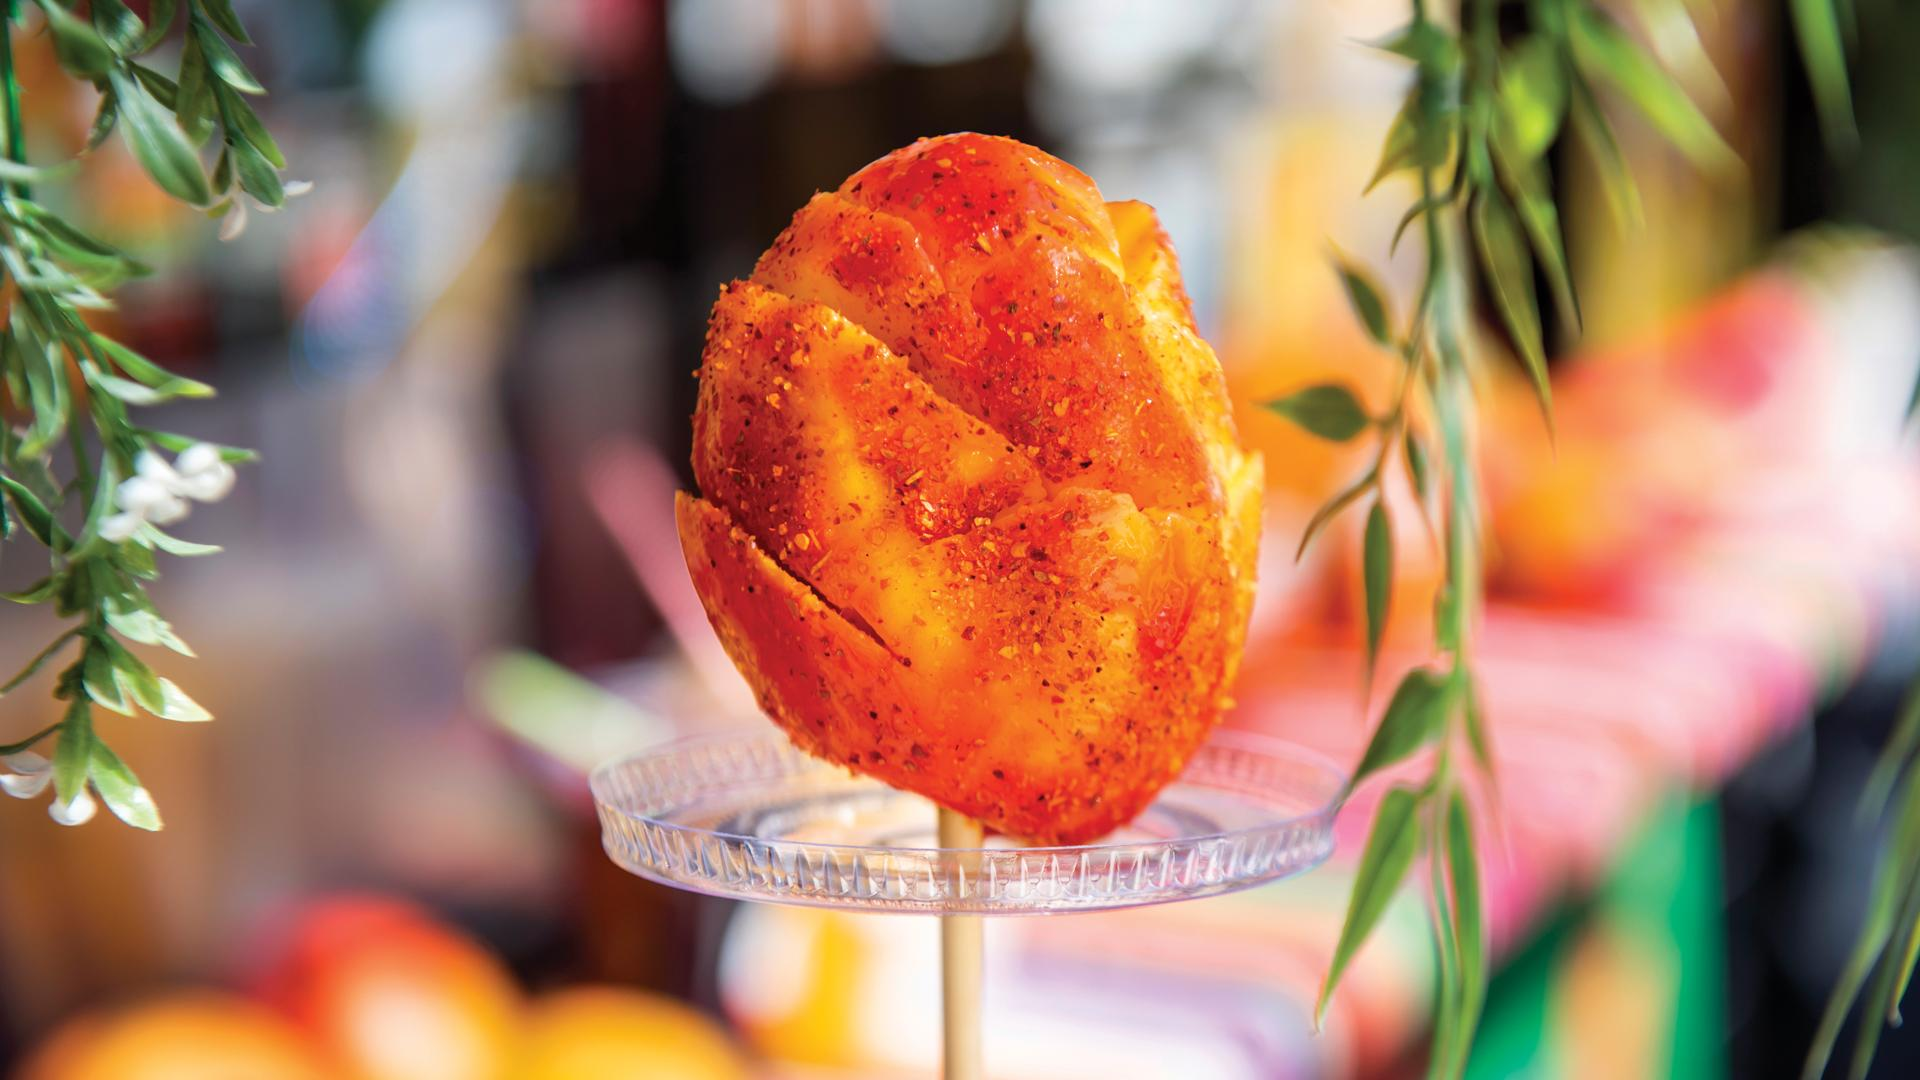 The best Toronto food markets   Mango on a stick with chamoy and tajin from Fruta Libre at the World Food Market